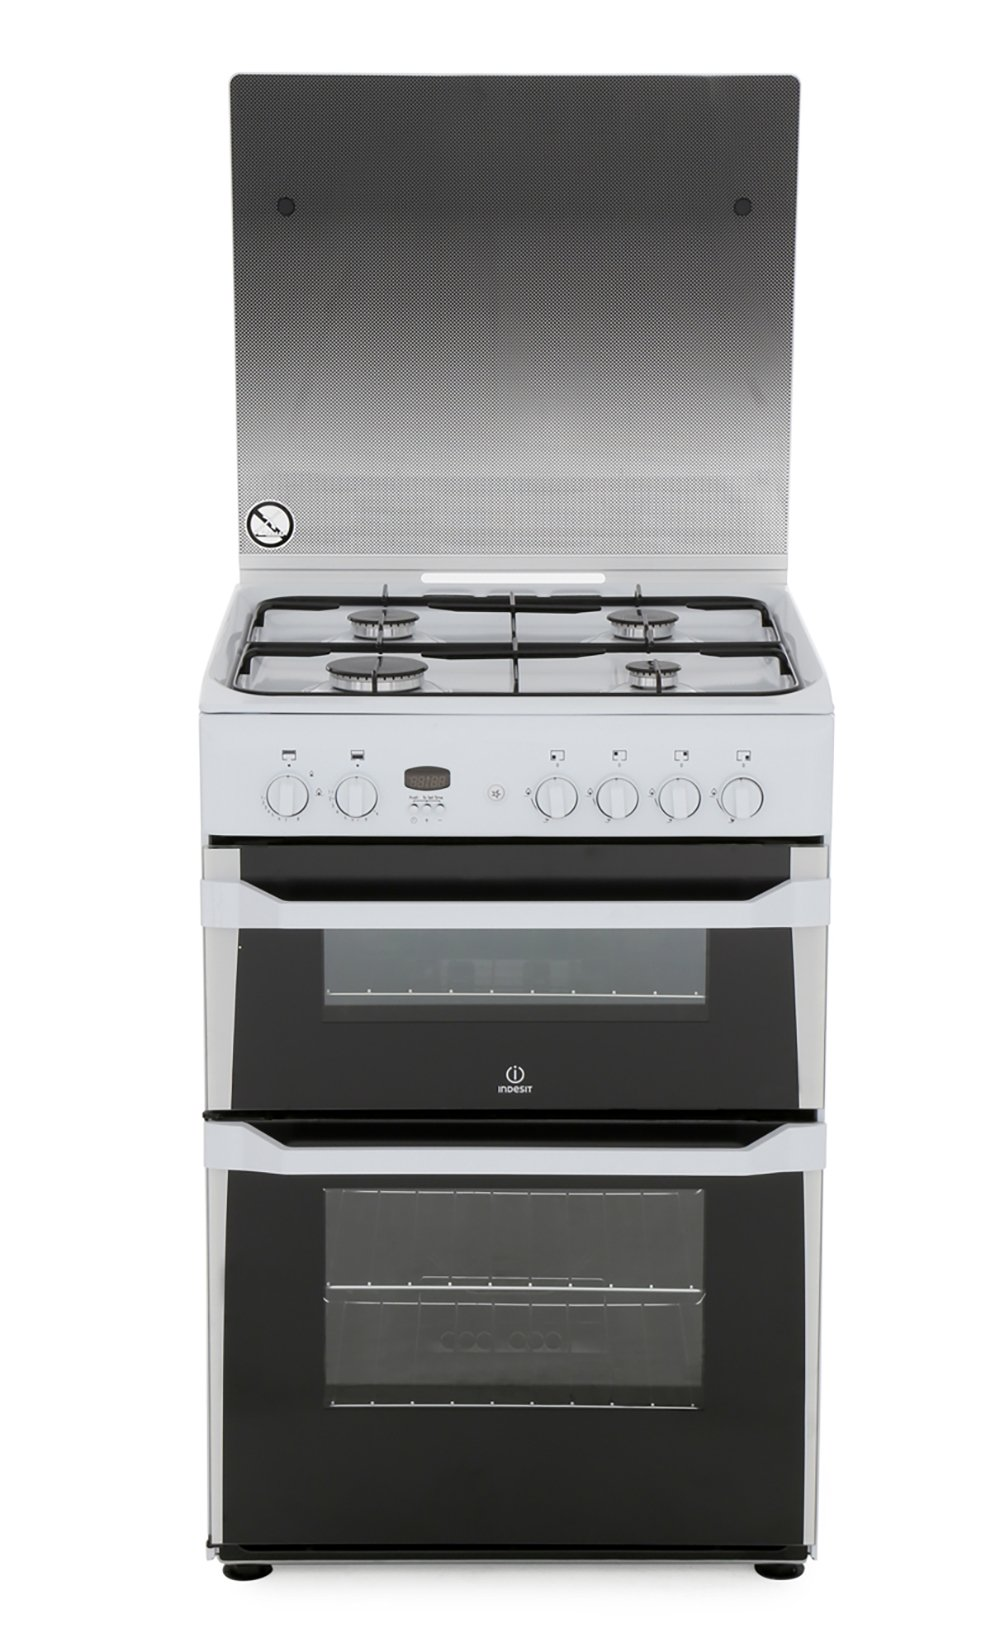 Indesit ID60G2W Gas Cooker with Double Oven